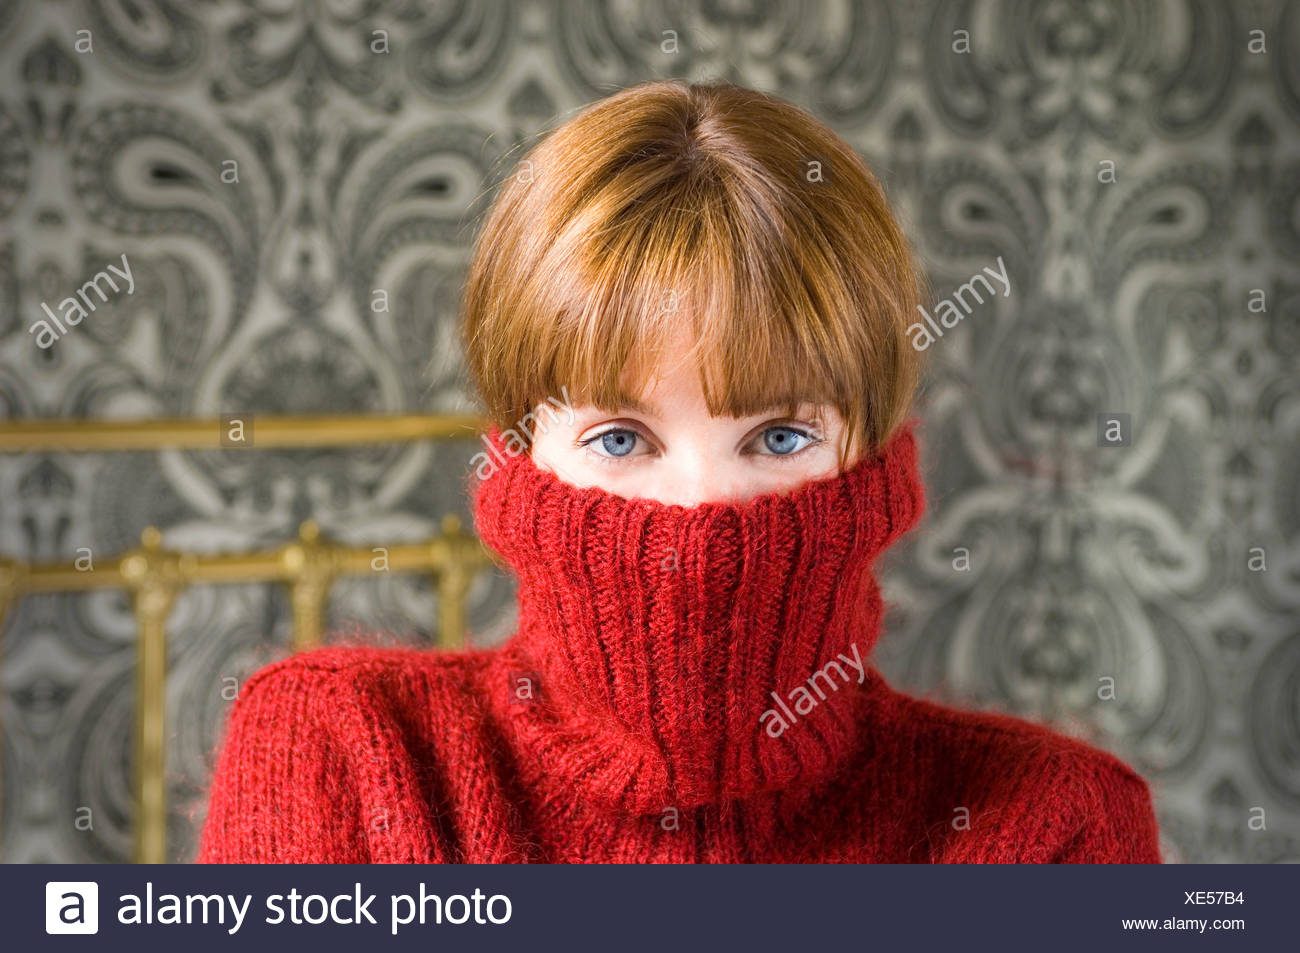 woman with jumper pulled over face - Stock Image